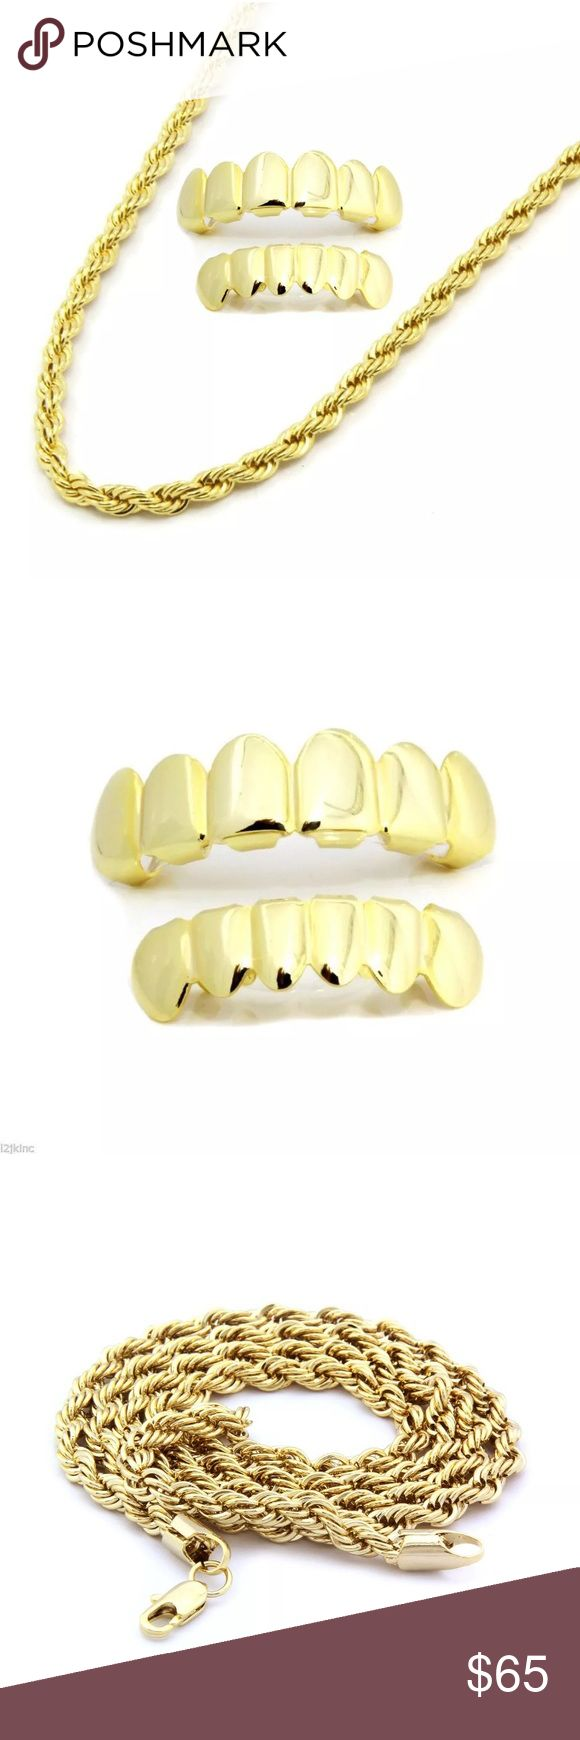 """Grillz and Gold 24"""" Rope Chain SET - Brand New! THIS LISTING IS 1 SET OF GRILLZ (TOP & BOTTOM) PLUS A 4MM 24"""" INCH ROPE CHAIN  Type: Rope Chain Clasp Lobster 14k Gold Plated  Grillz are designed for Bottom & Top teeth and is one size fits all. Includes one silicon fixing bar to keep your grill in tight. COMES WITH EASY TO FOLLOW INSTRUCTIONS AND READY TO WEAR IN MINUTES. Each grillz can fit any teeth no matter how straight or crooked your teeth are you can wear the grillz and remove them…"""